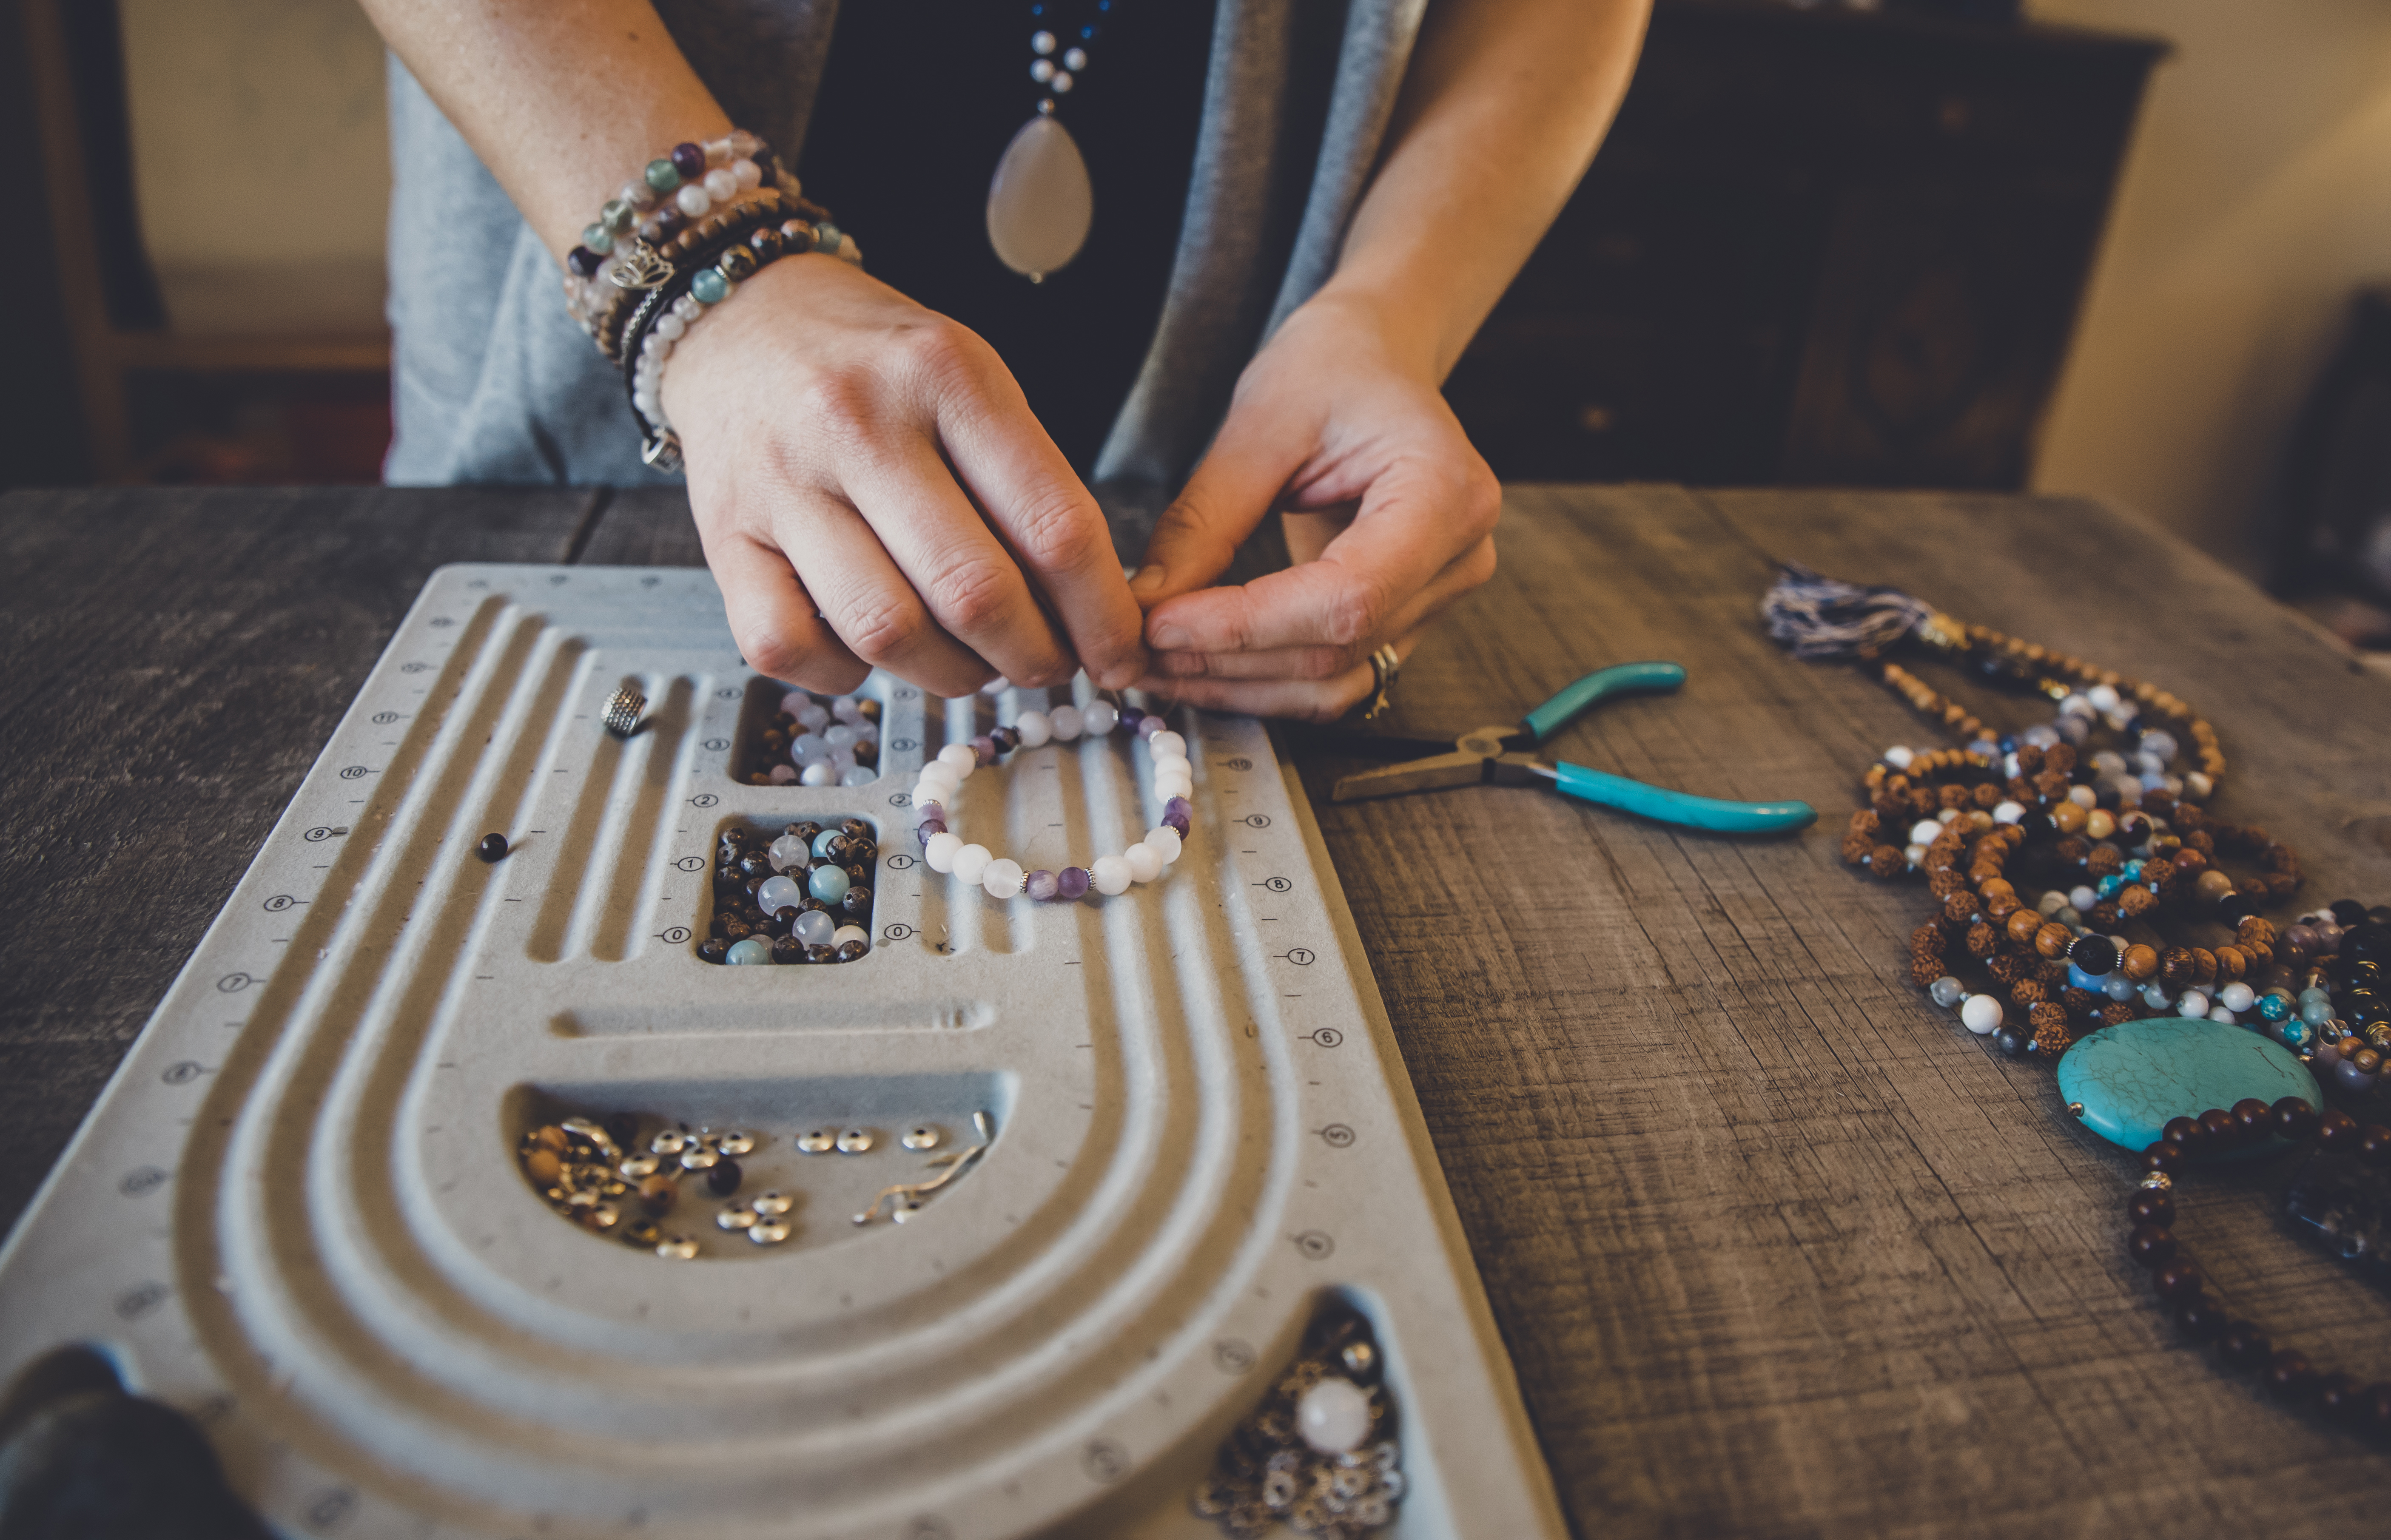 How To Start An In Home Jewelry Business Small Business Chron Com